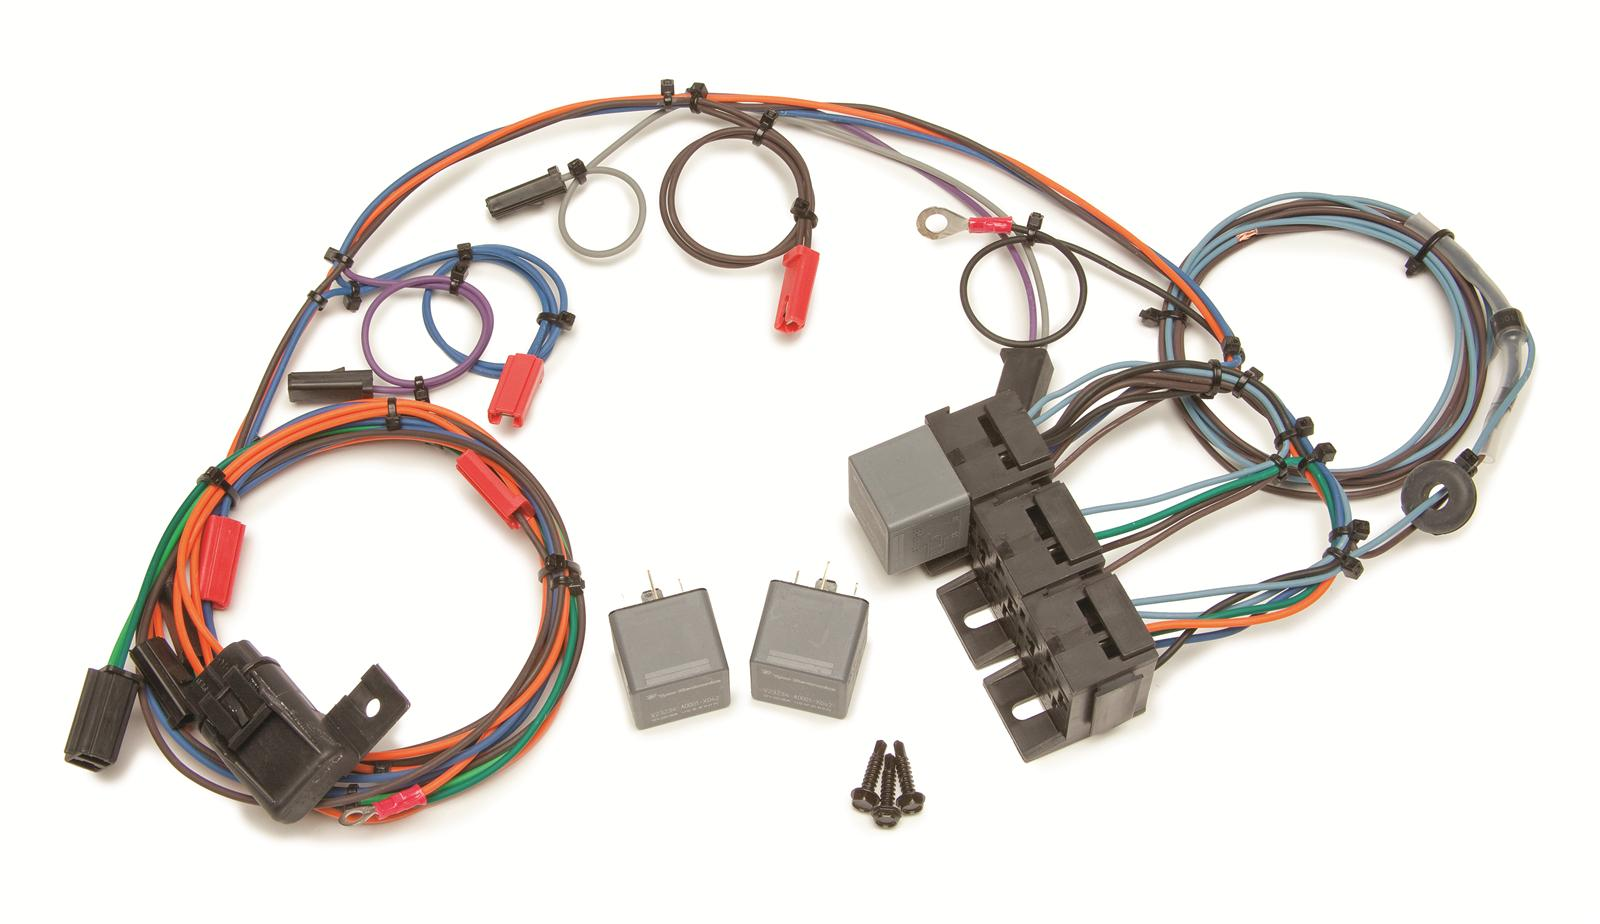 painless wiring 30818 wiring harness headlight door chevy camaro kit ebay